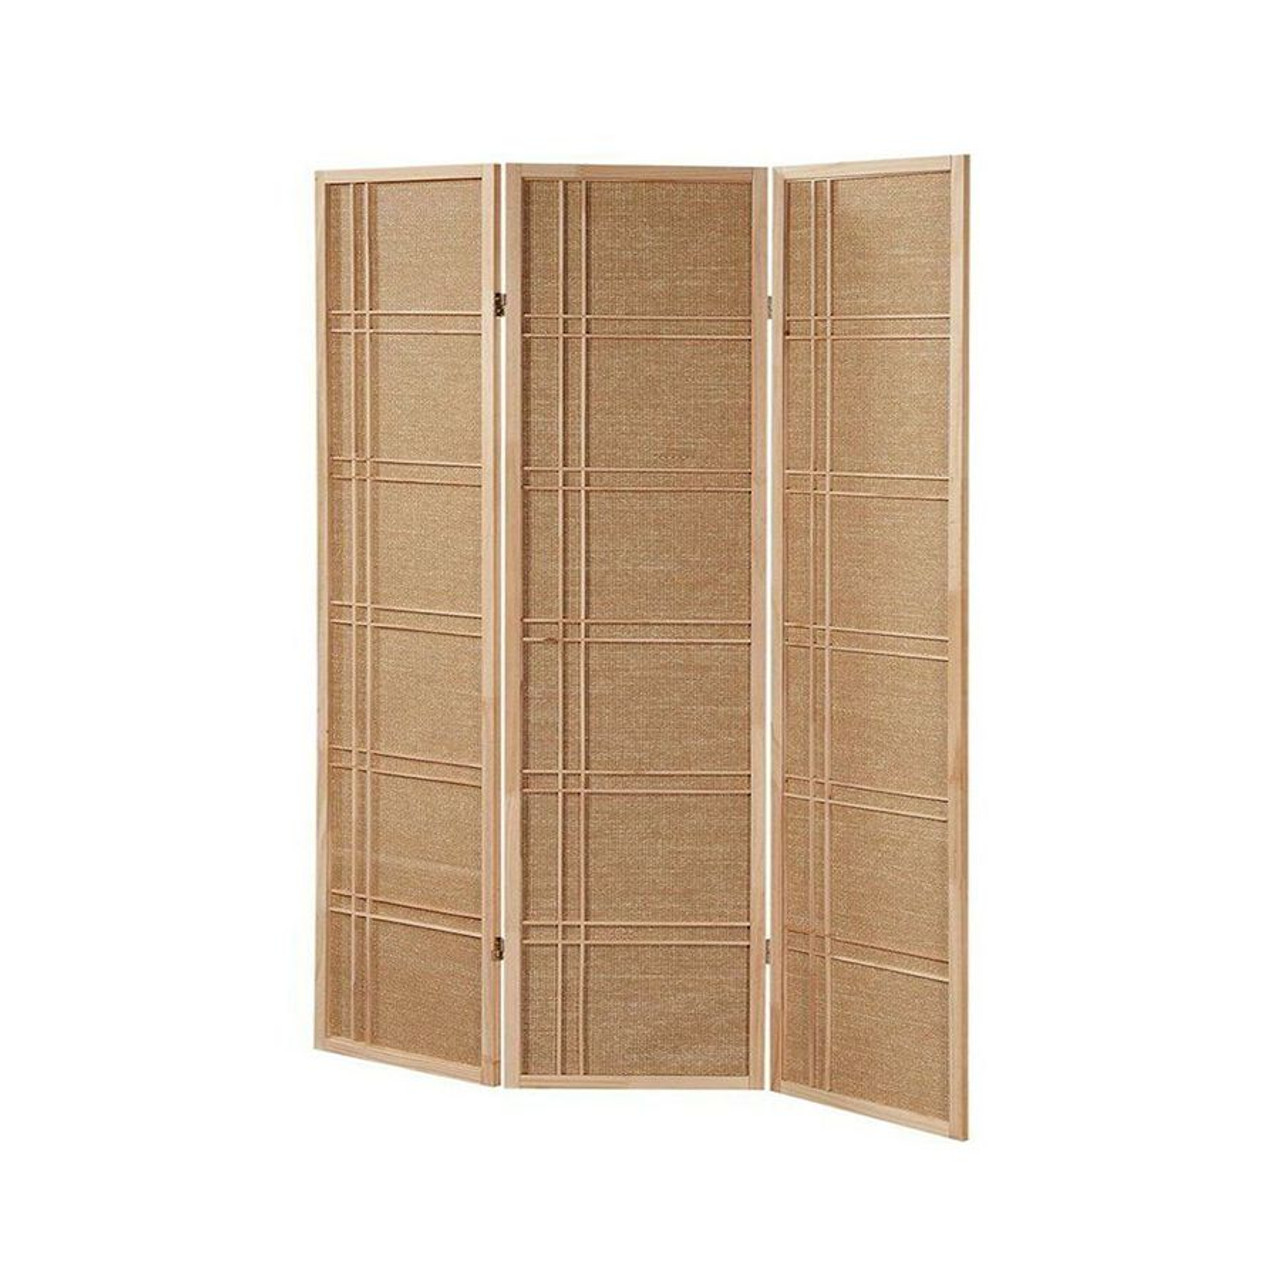 Room Divider 3 Panel Fabric In-lay Wooden Natural Finish